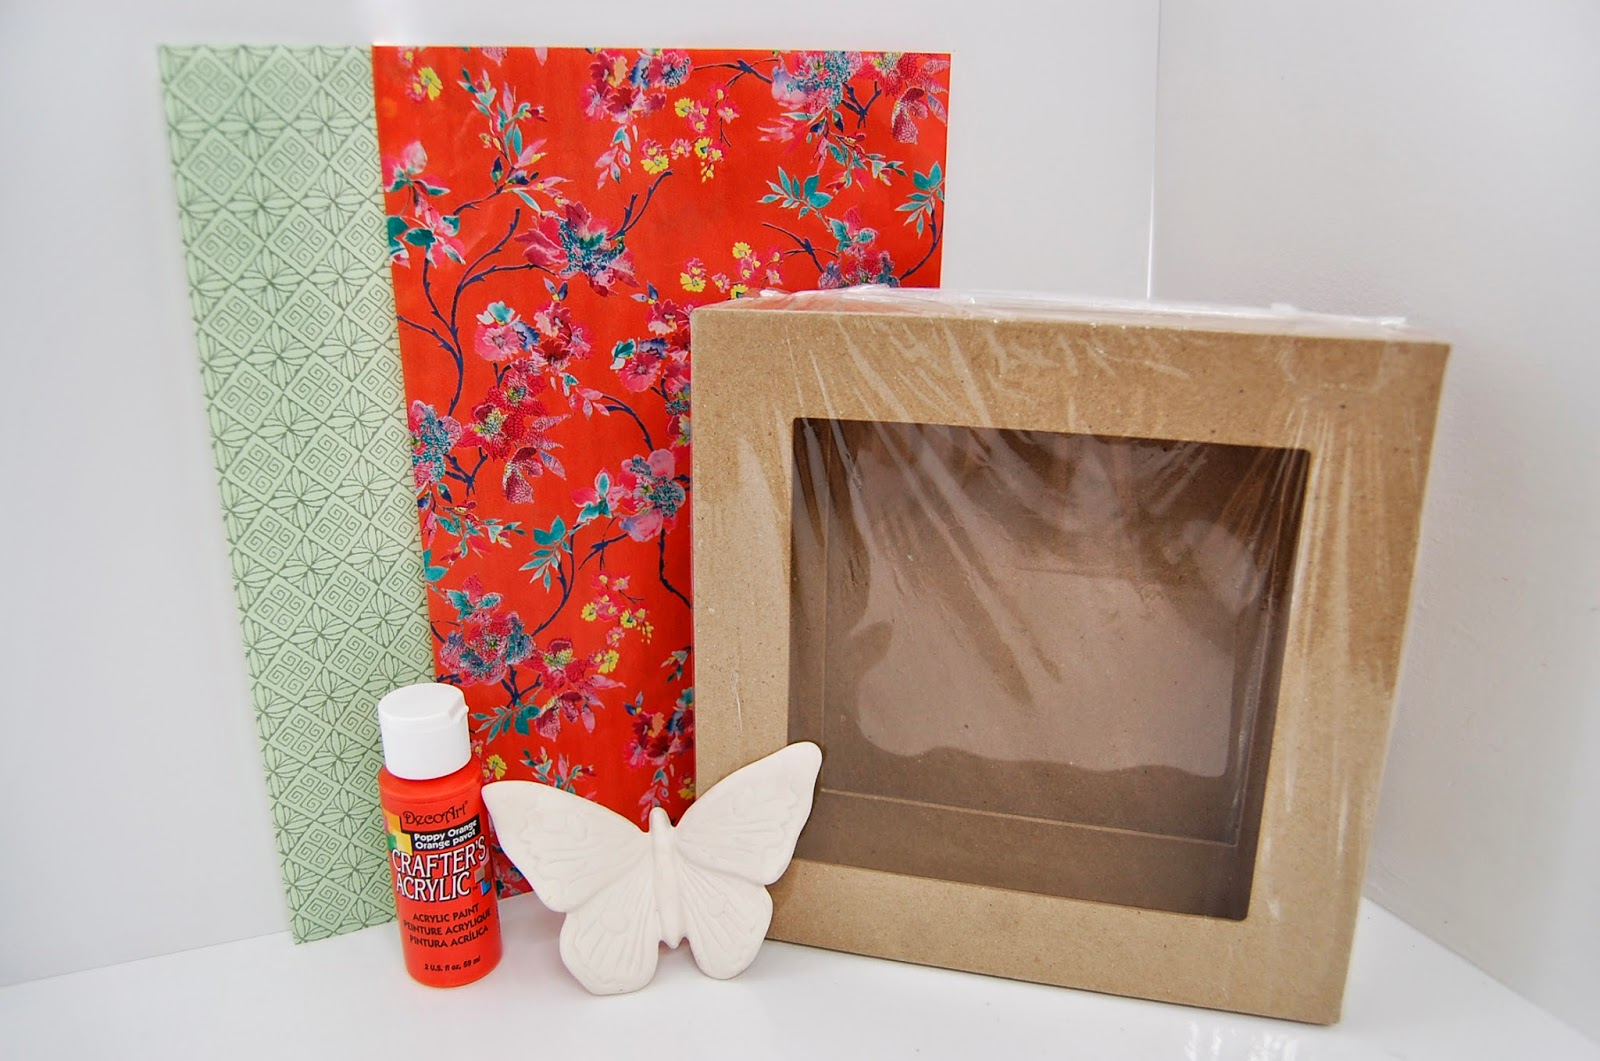 3D Box Frame Decoupage/Decopatch Makeover Wall Art Idea | Decopatch ...